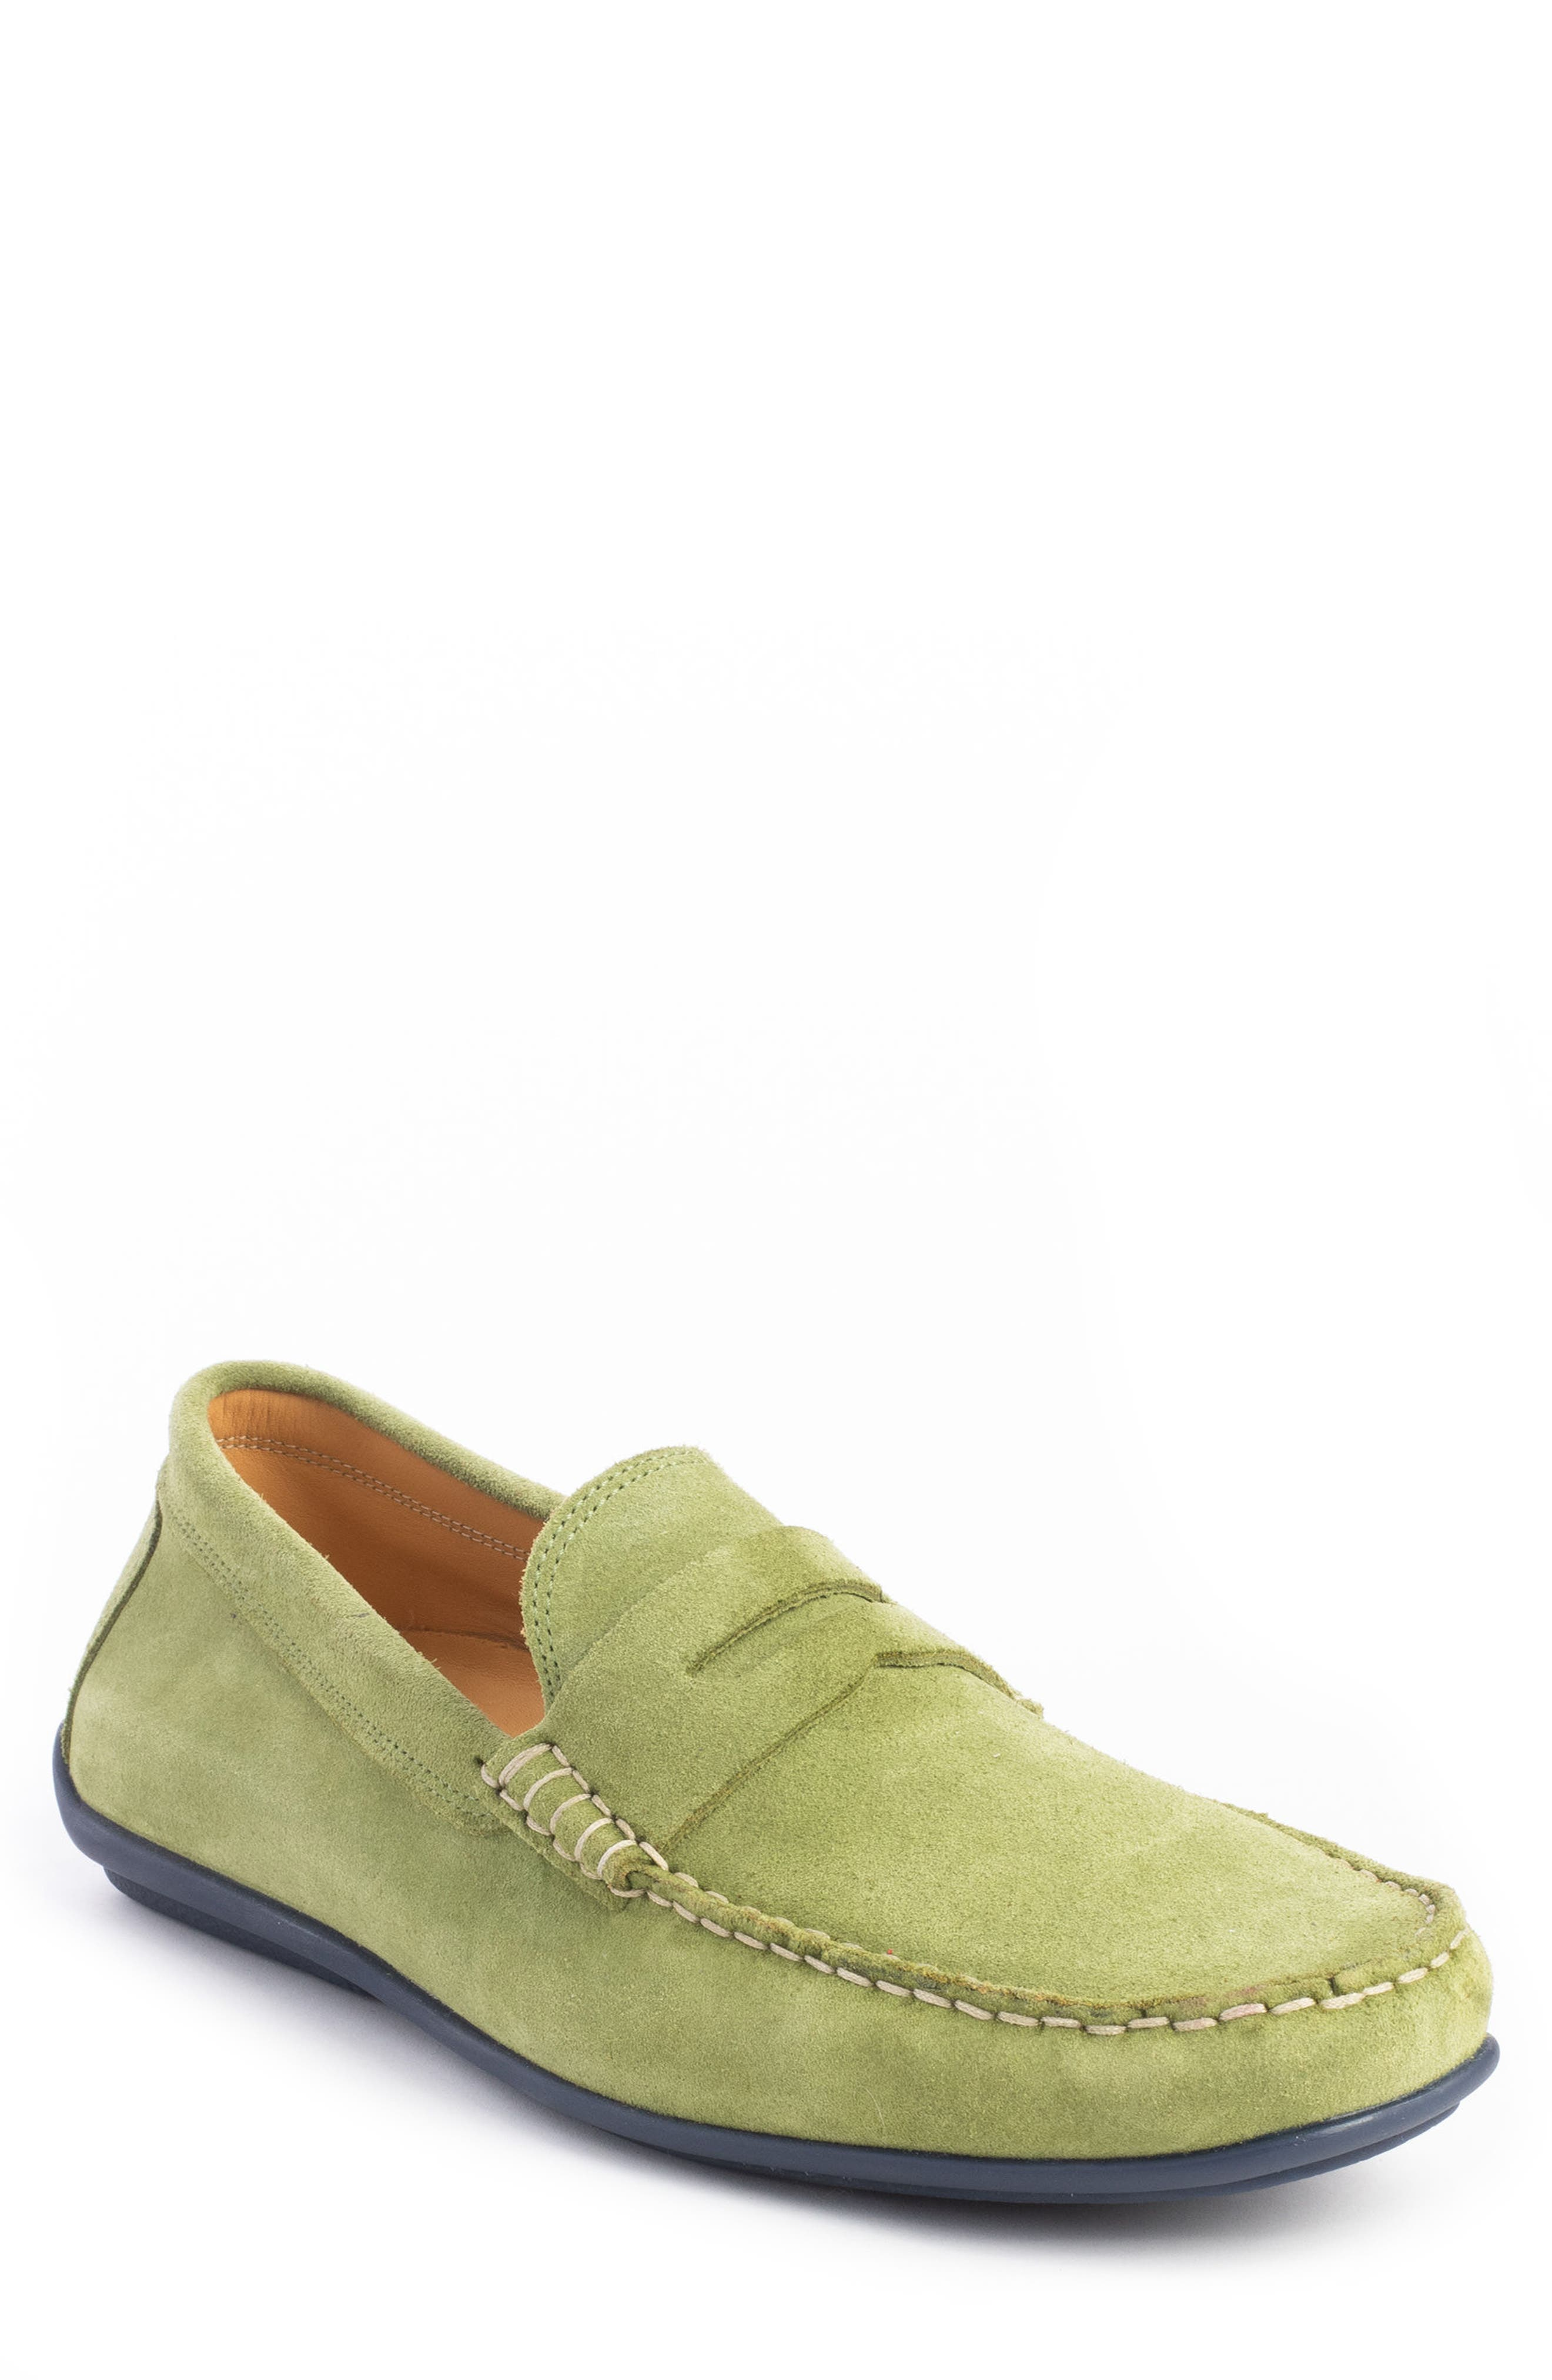 'Parkers' Penny Loafer,                             Main thumbnail 1, color,                             SPRING GREEN